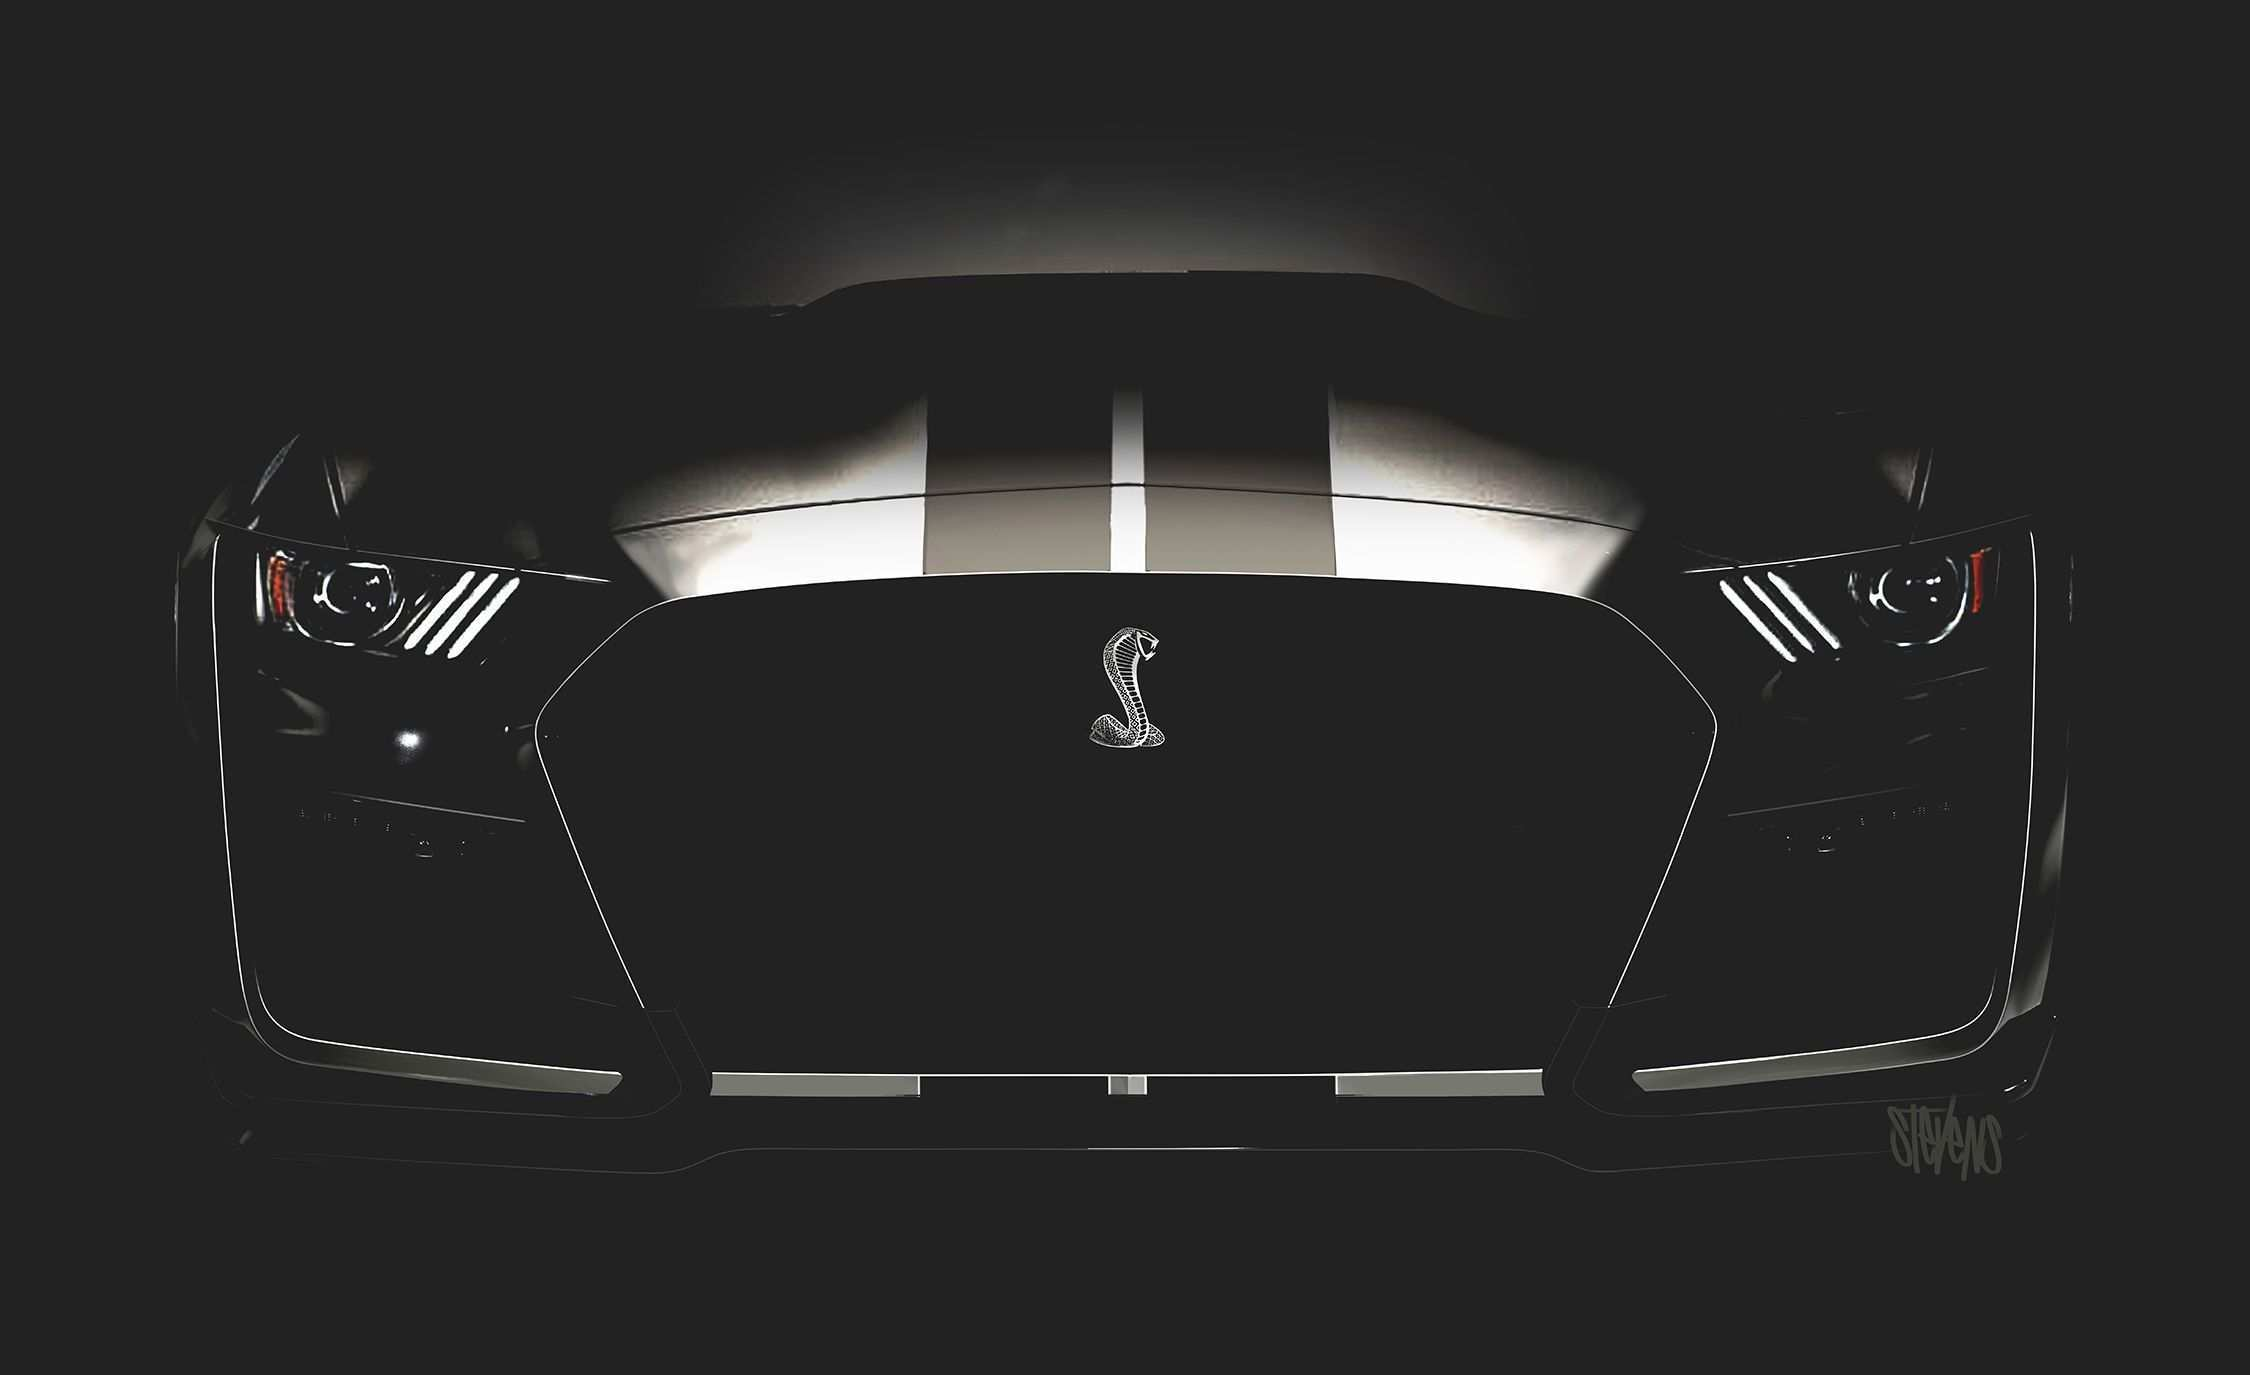 87 All New 2020 Ford Mustang Gt350 Style with 2020 Ford Mustang Gt350